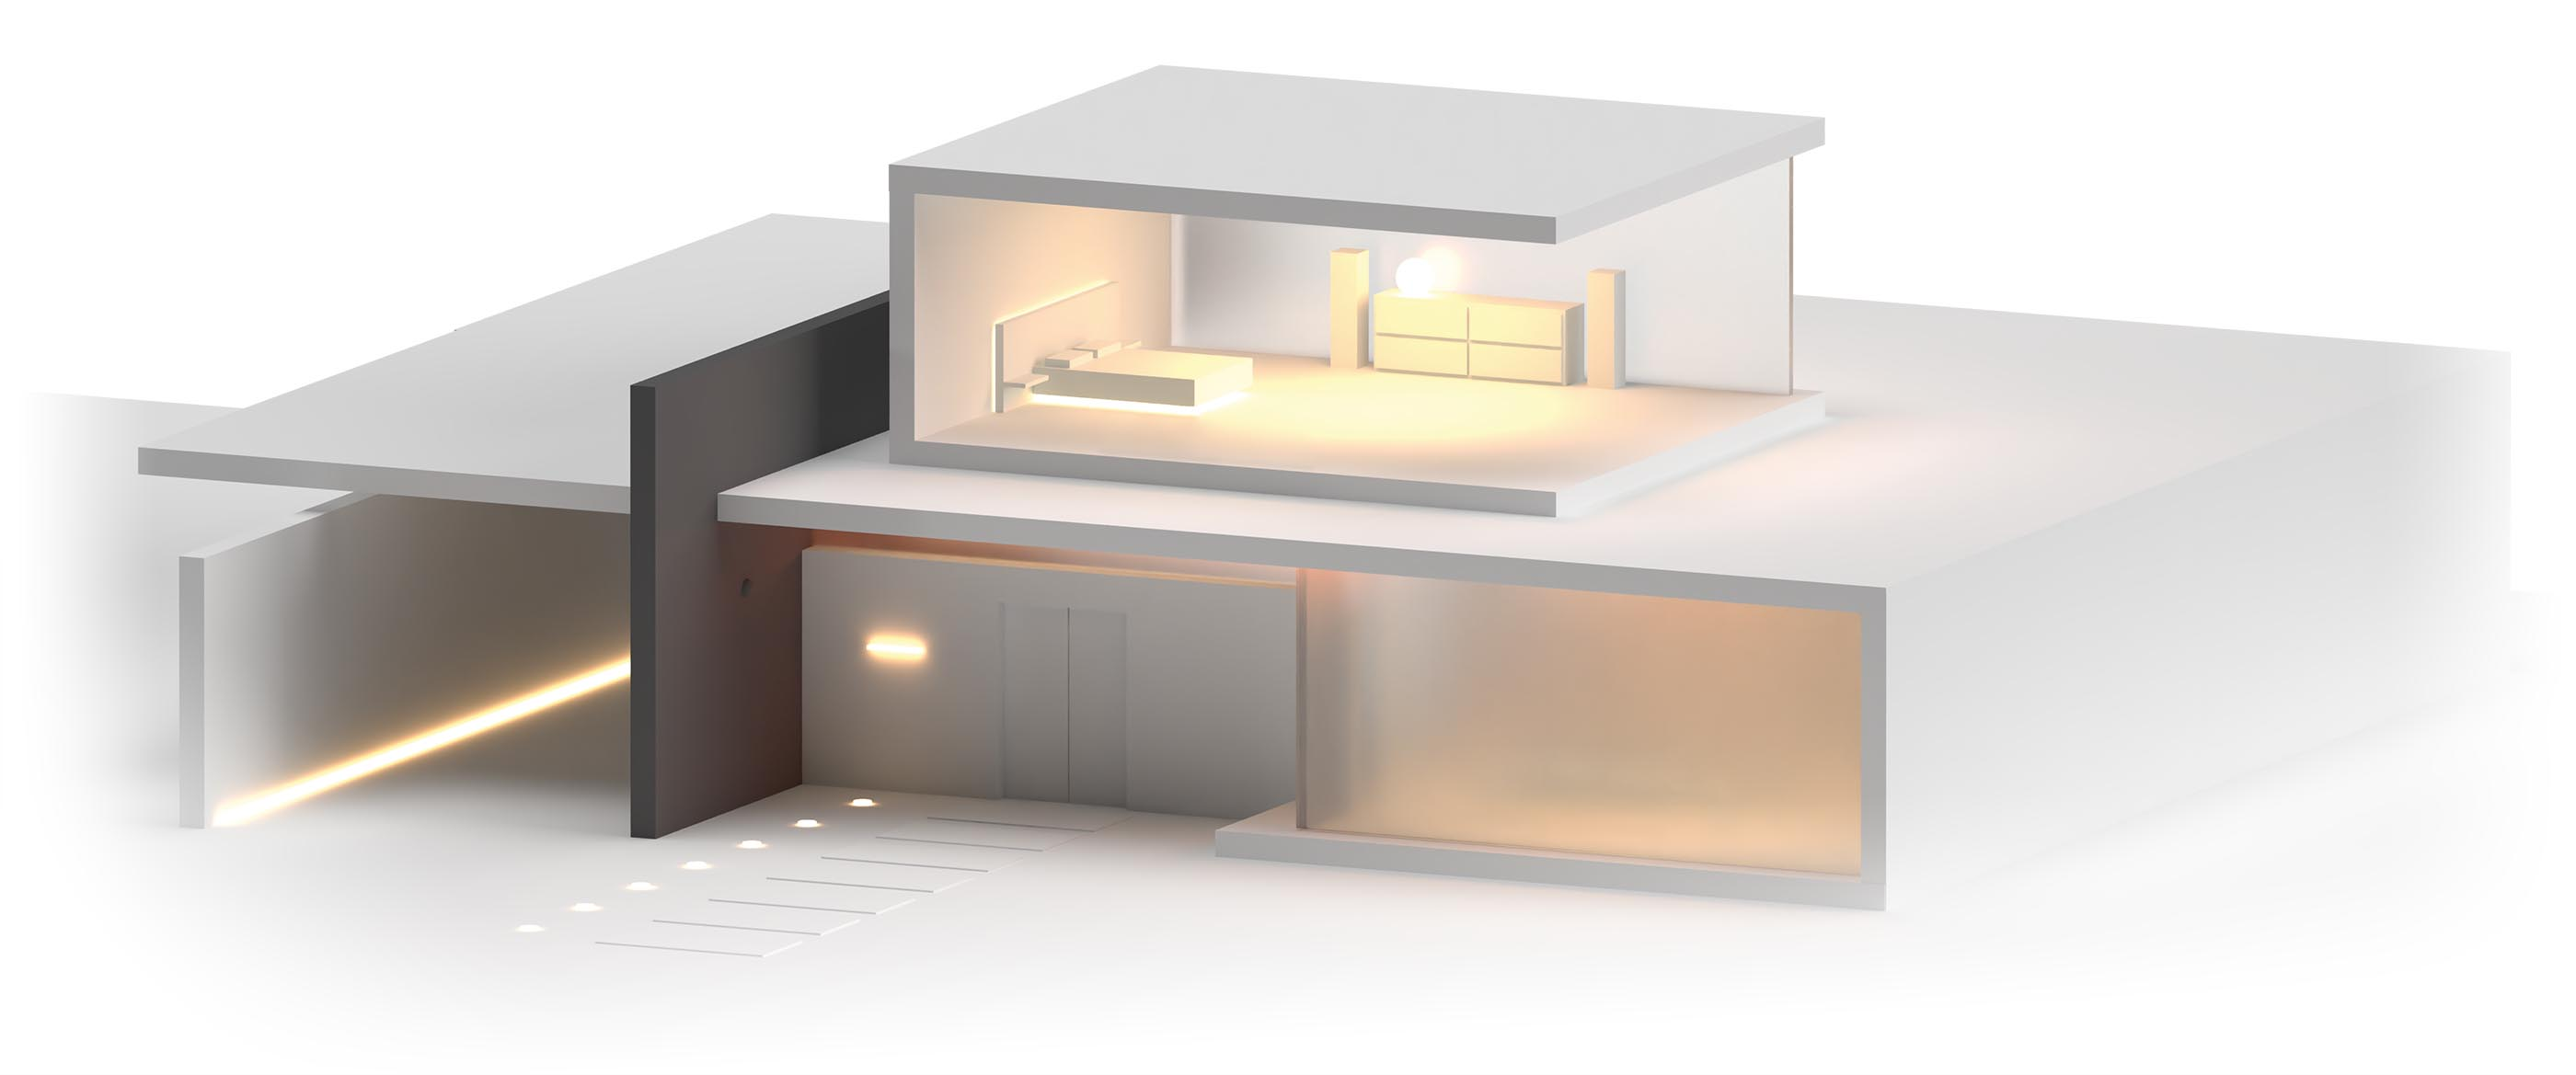 A 3D render of a high end house cutaway to show the bedroom.